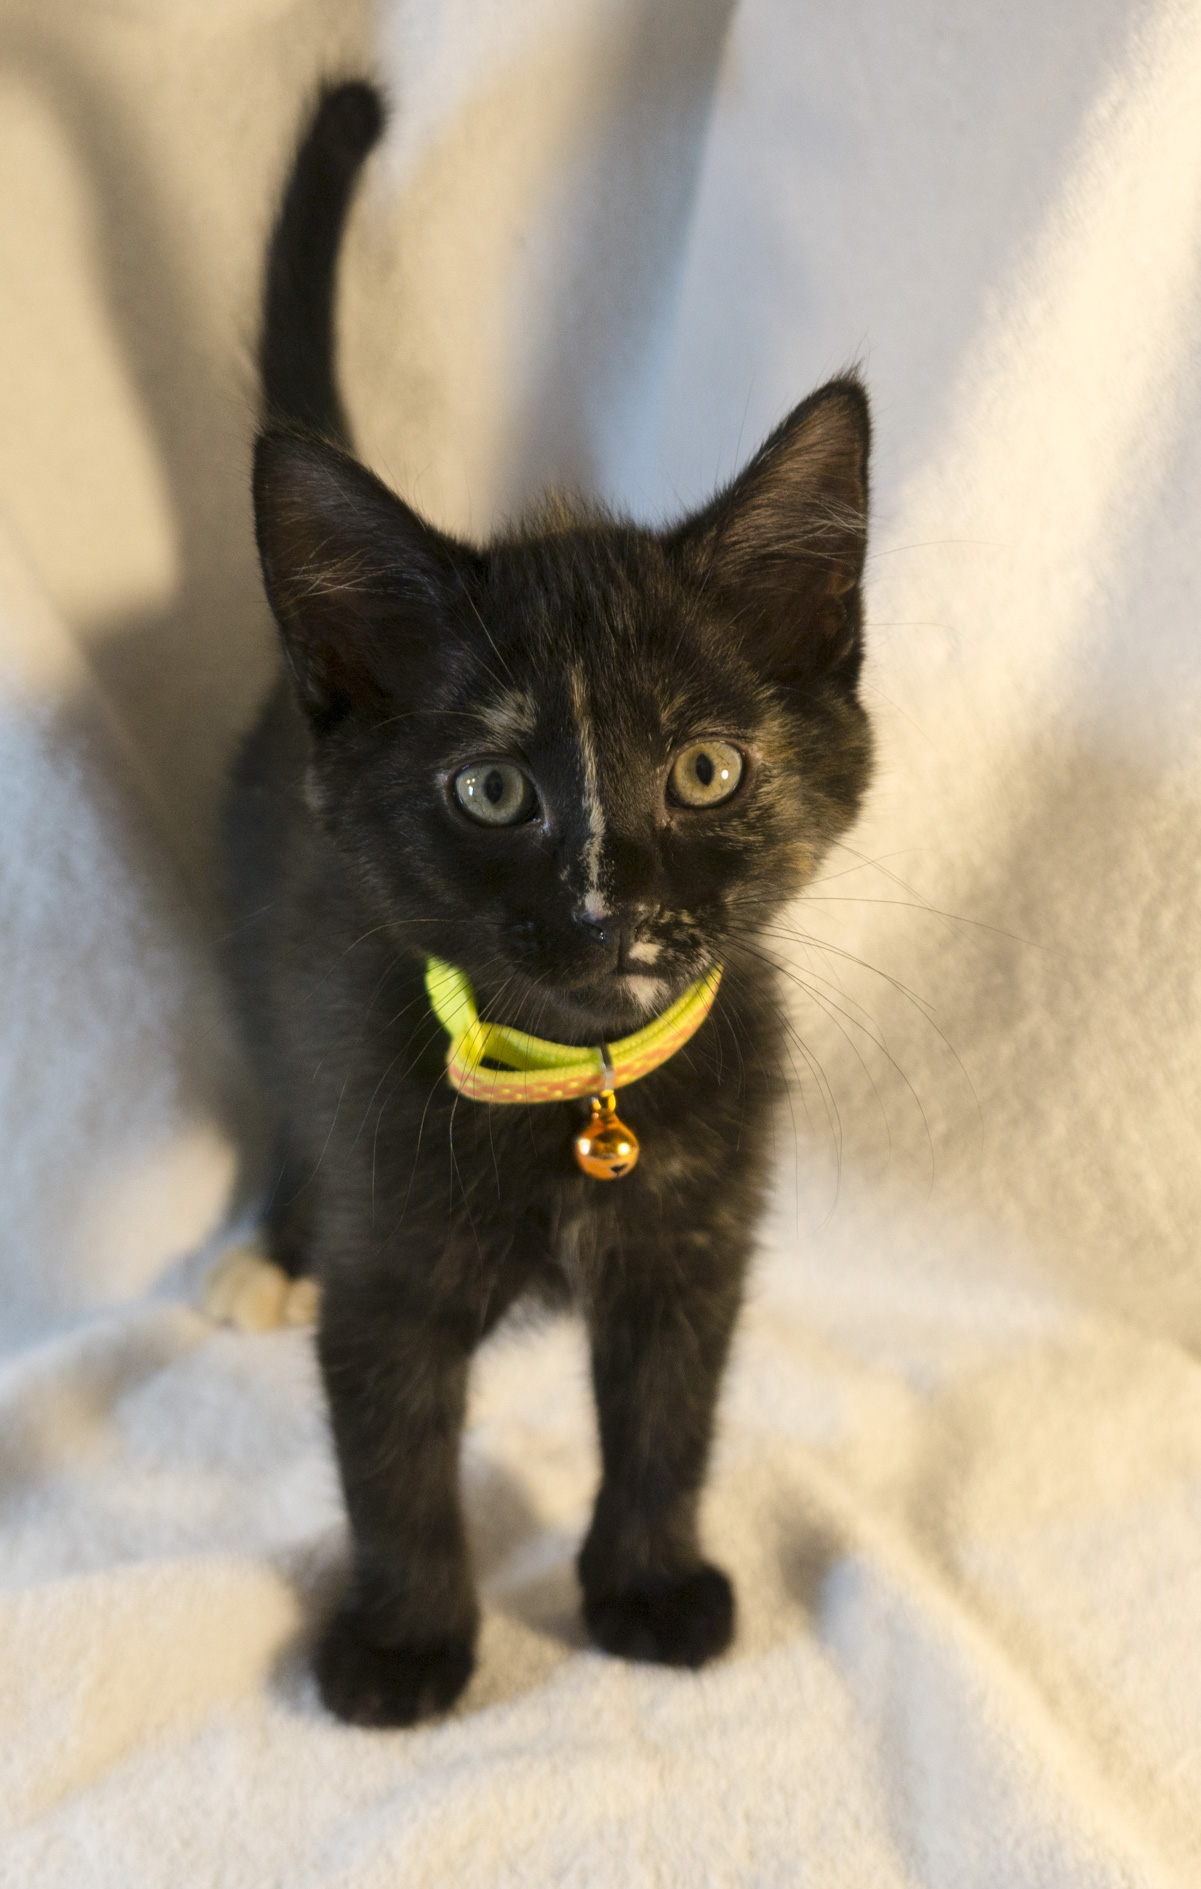 We love all the kittens here at the Academy, but  Spot  loves us back more than any of the others.  She's always the first to greet us when we come into the room, and the most likely to curl up and sleep on a lap.  She's likely to grow up into a great lap companion.